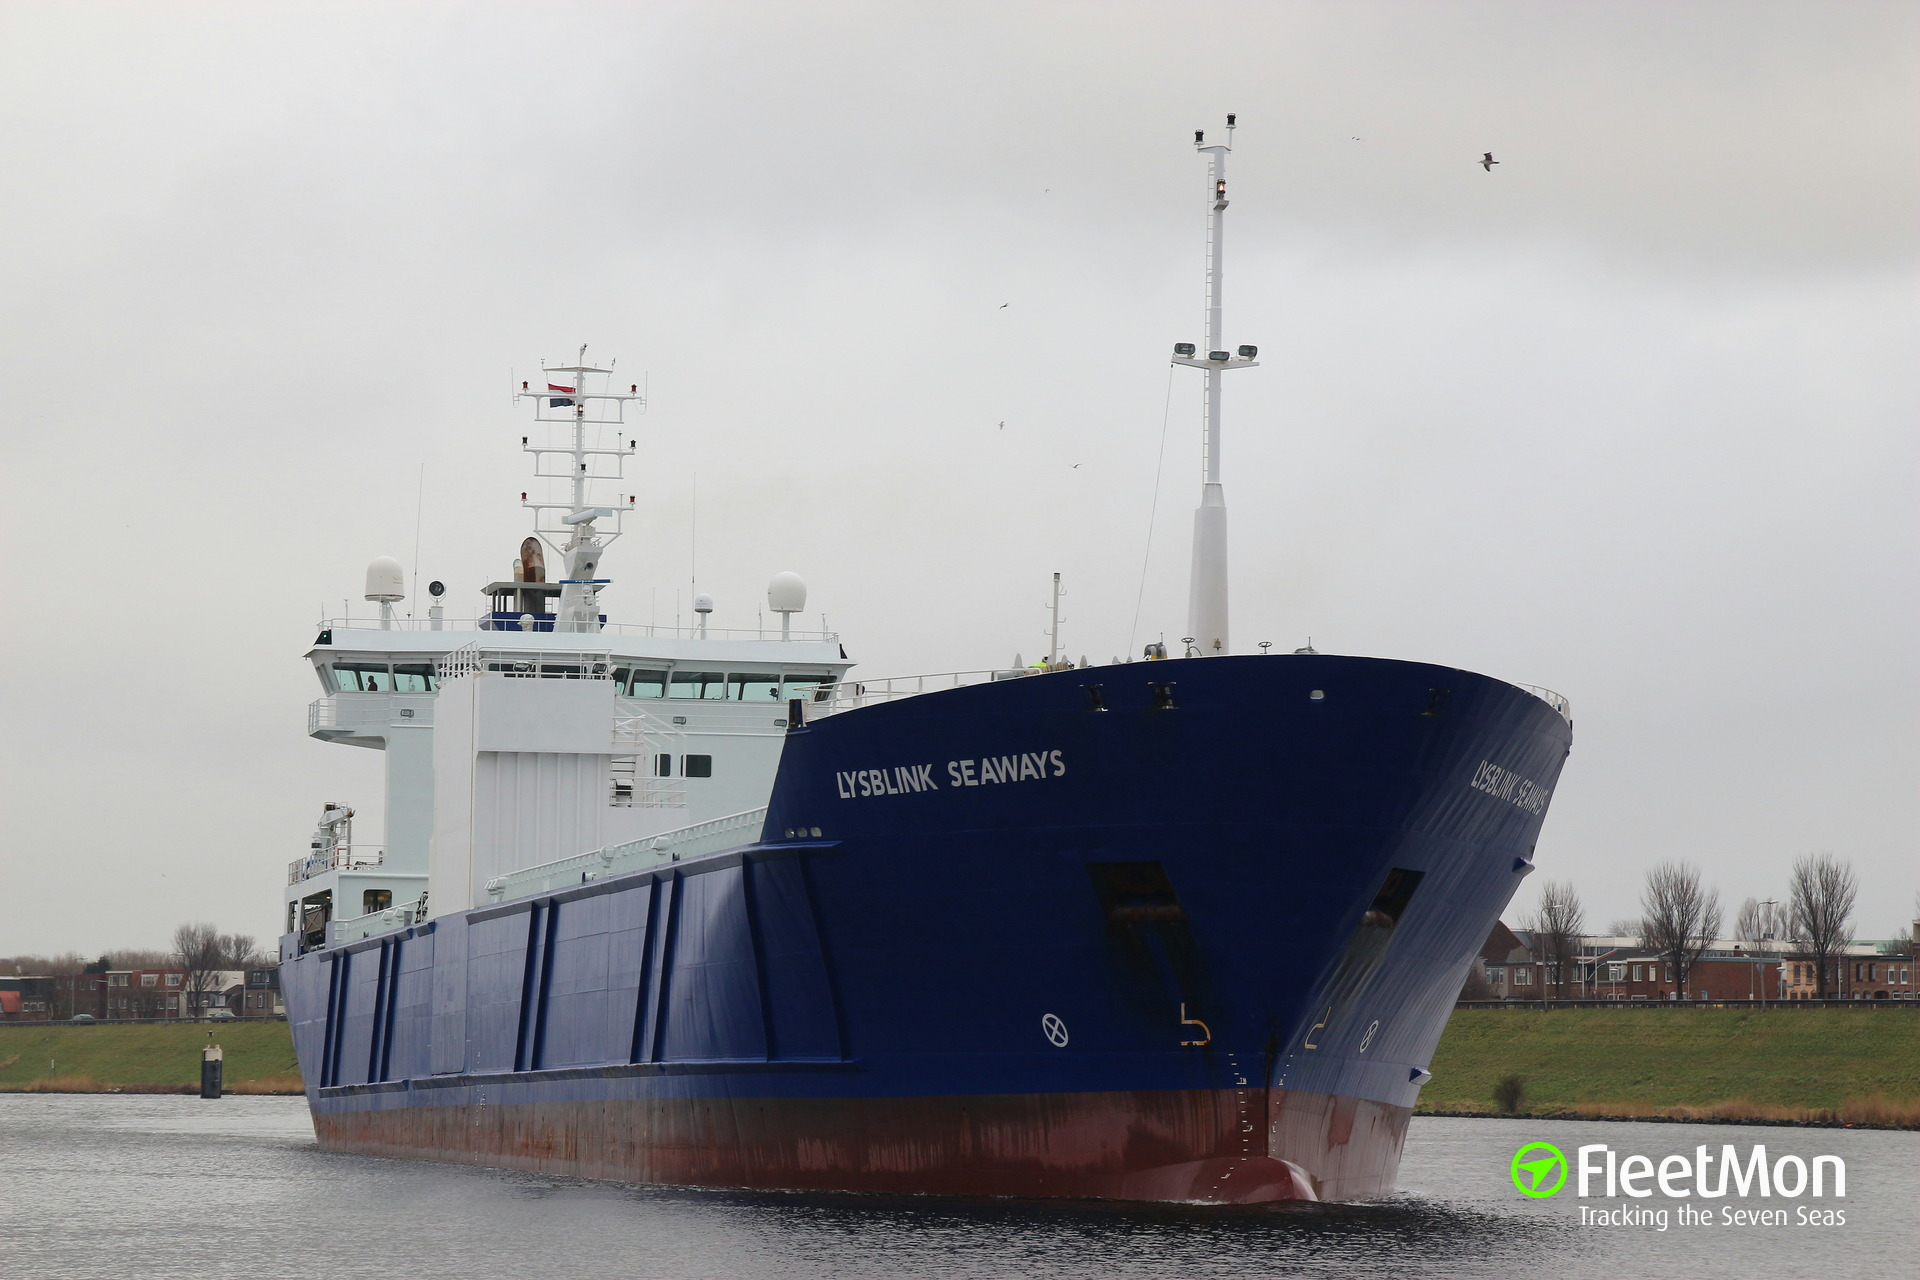 General cargo vessel Lysblink Seaways refloated